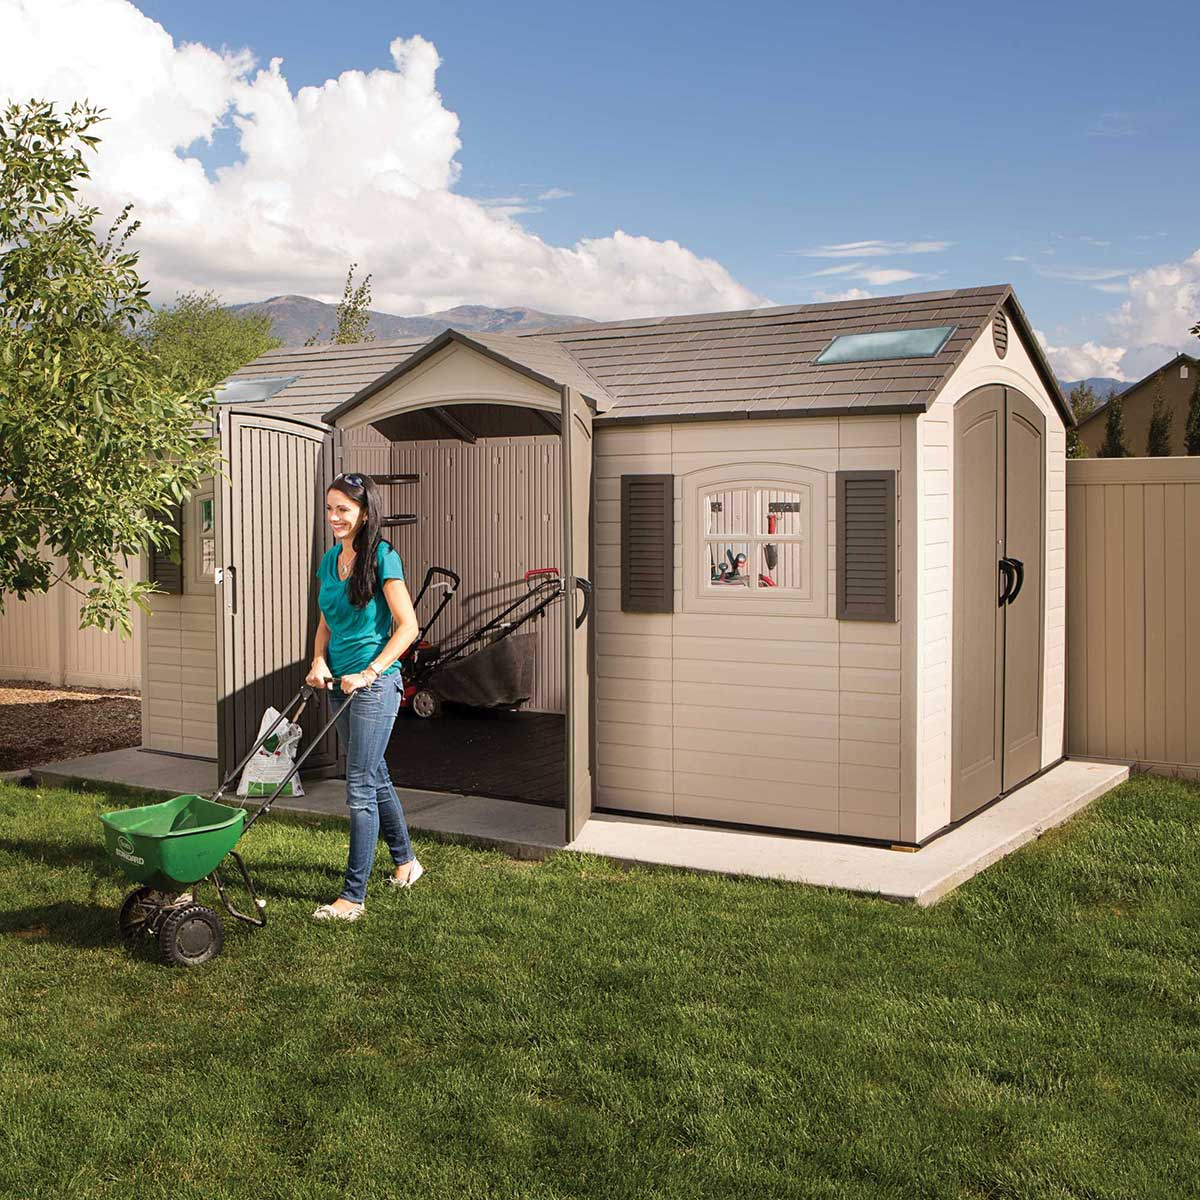 Lifetime 15 Ft. x 8 Ft. Outdoor Storage Shed (Dual Entry)